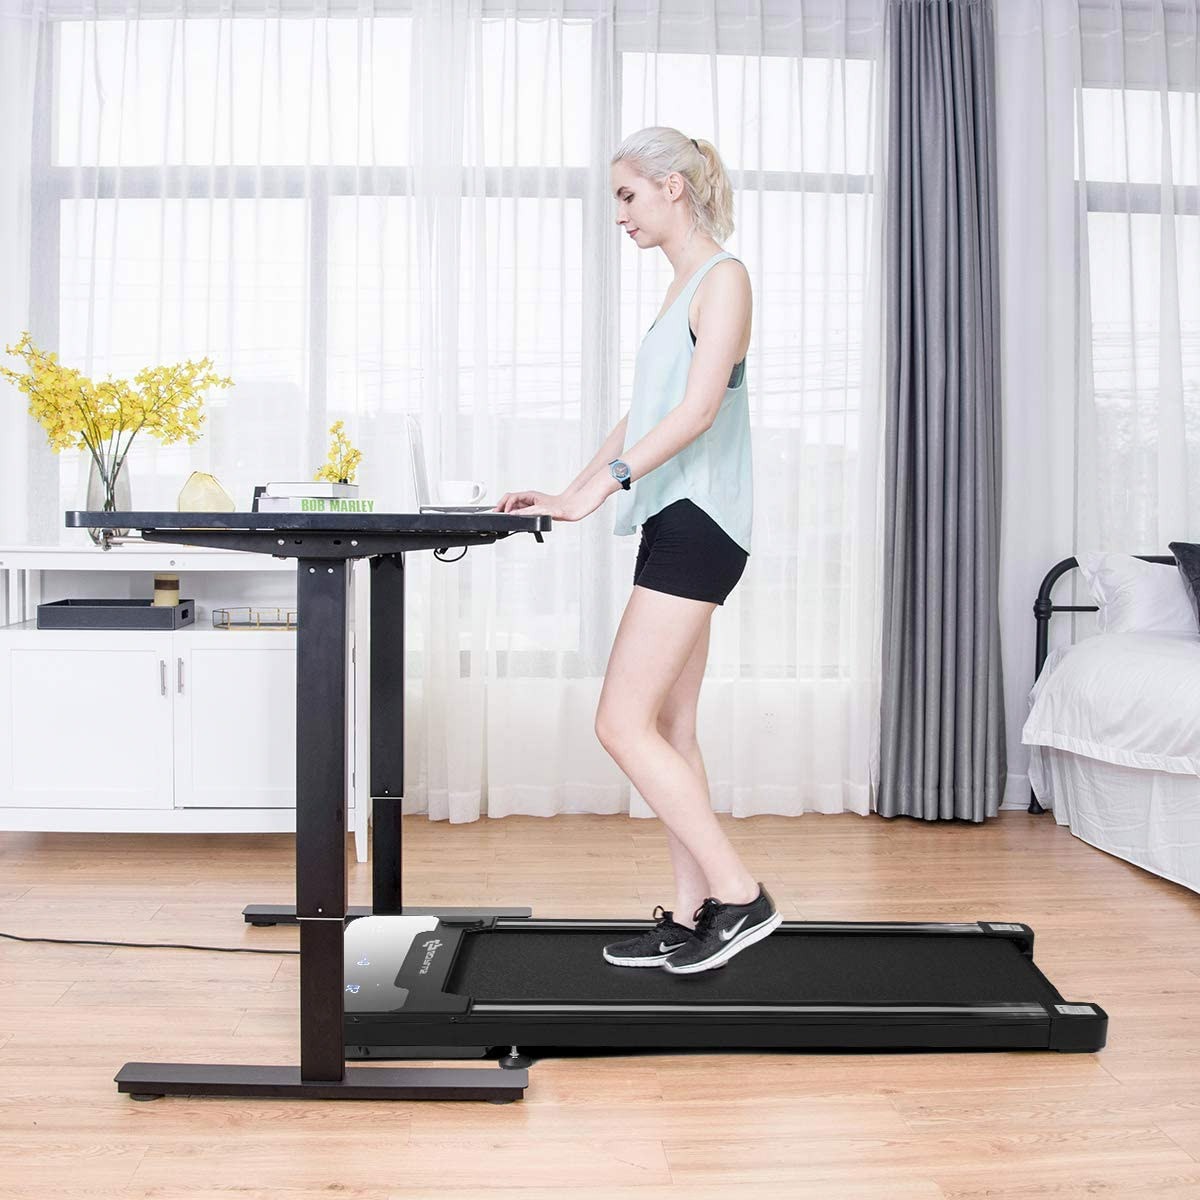 standing treadmill desk for a home workout